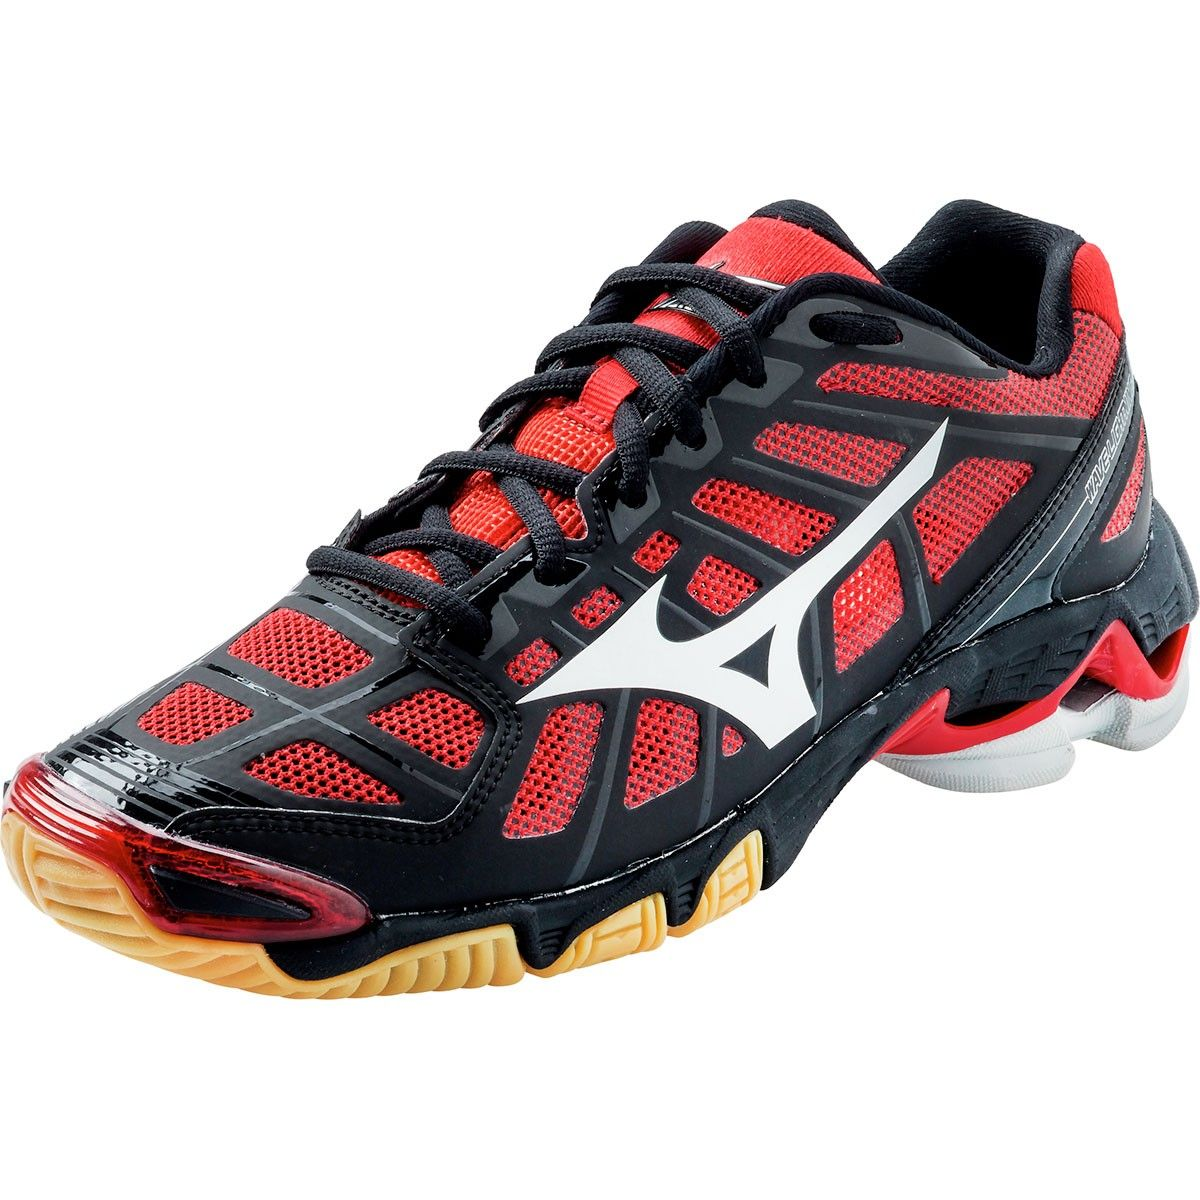 Red And Black Volleyball Shoes Volleyball Shoes To Continue Dominating The World Of Volleyball For Volleyball Shoes Mizuno Shoes Volleyball Outfits